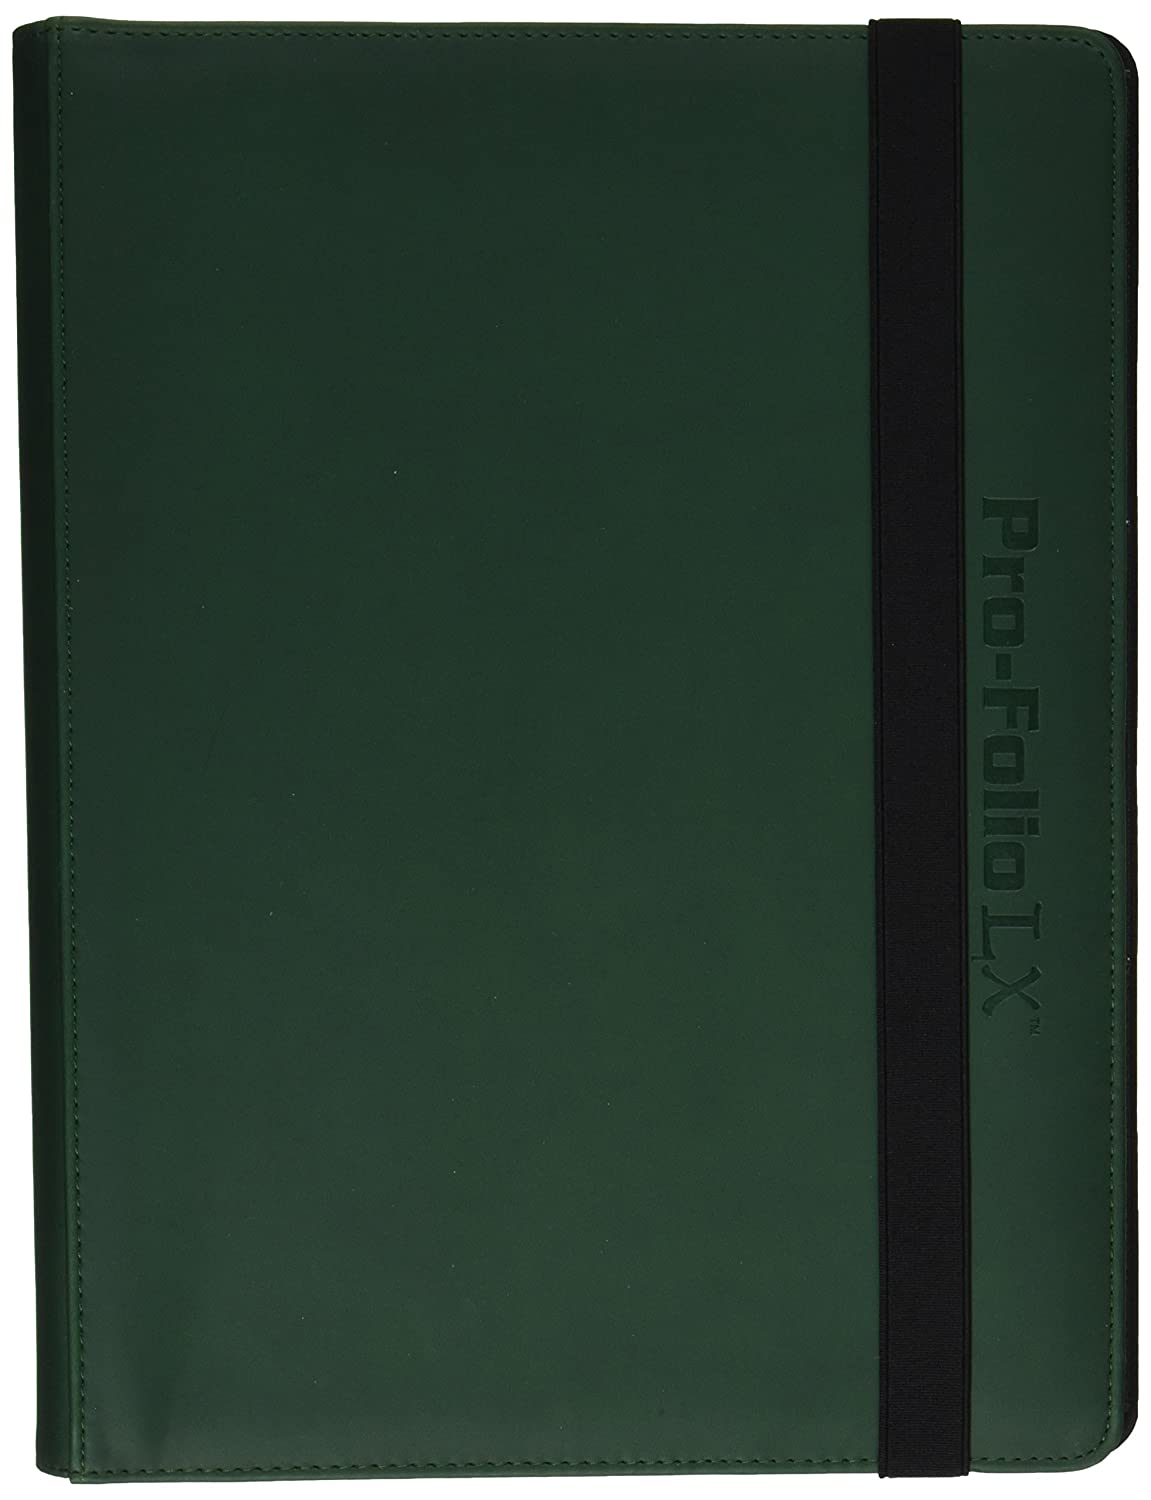 Pro-Folio 9-Pocket LX Album, Green Flat River Group 1-PF9LX-GRN